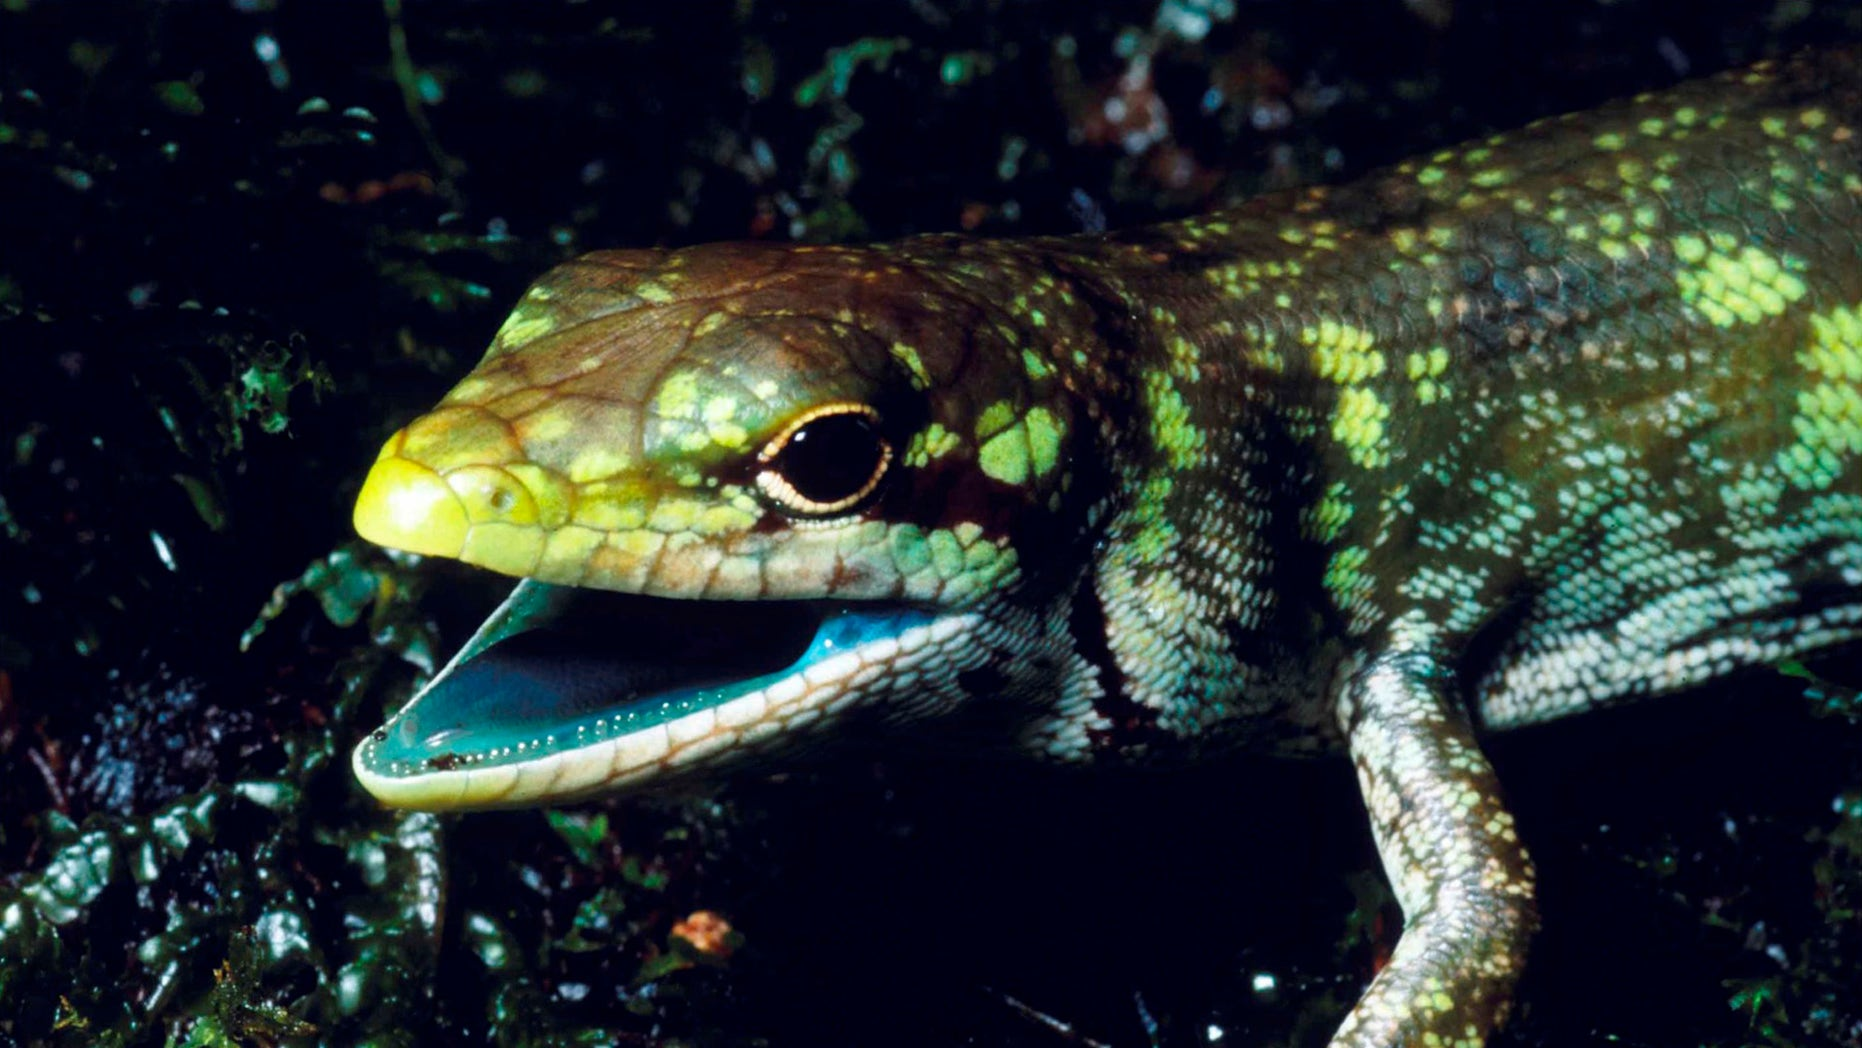 This undated photo provided by Christopher Austin in May 2018 shows a prehensile tailed skink (Prasinohaema prehensicauda) from the highlands of New Papua New Guinea. The high concentrations of the green bile pigment biliverdin in the blood overwhelms the crimson color of red blood cells resulting in a lime-green coloration of the muscles, bones, and mucosal tissues. (Christopher Austin via AP)